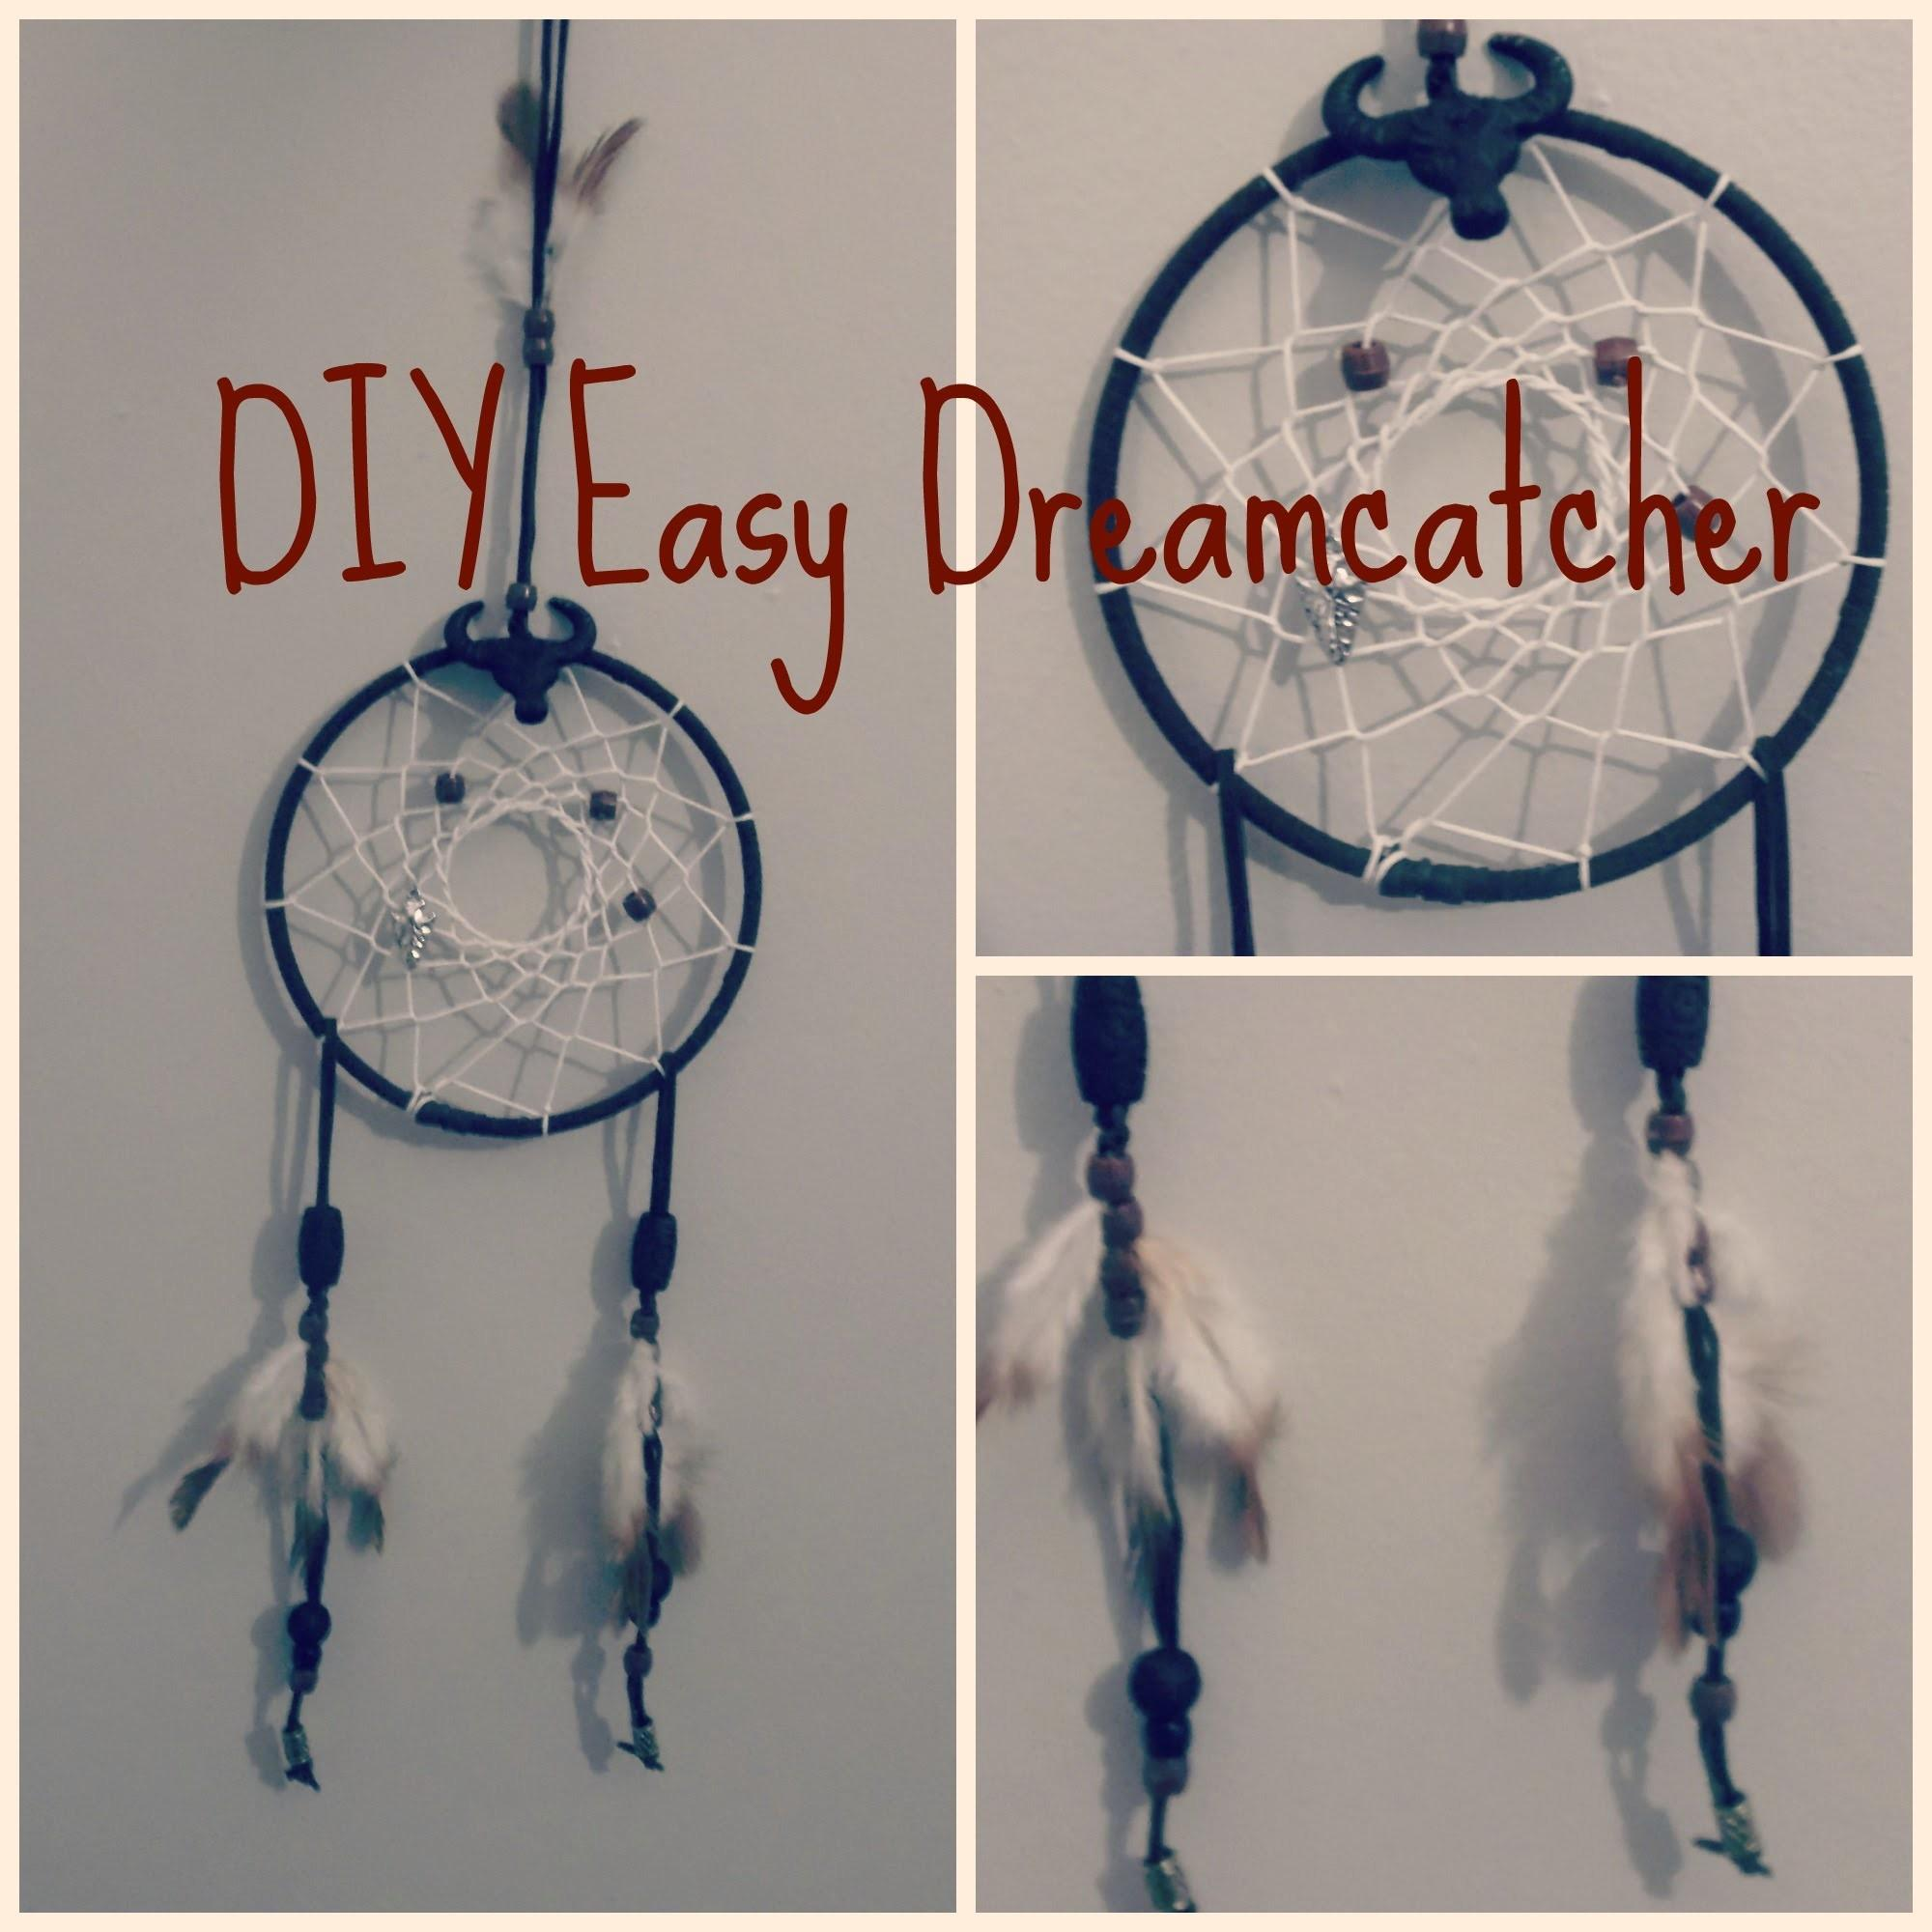 Diy Easy Dreamcatcher